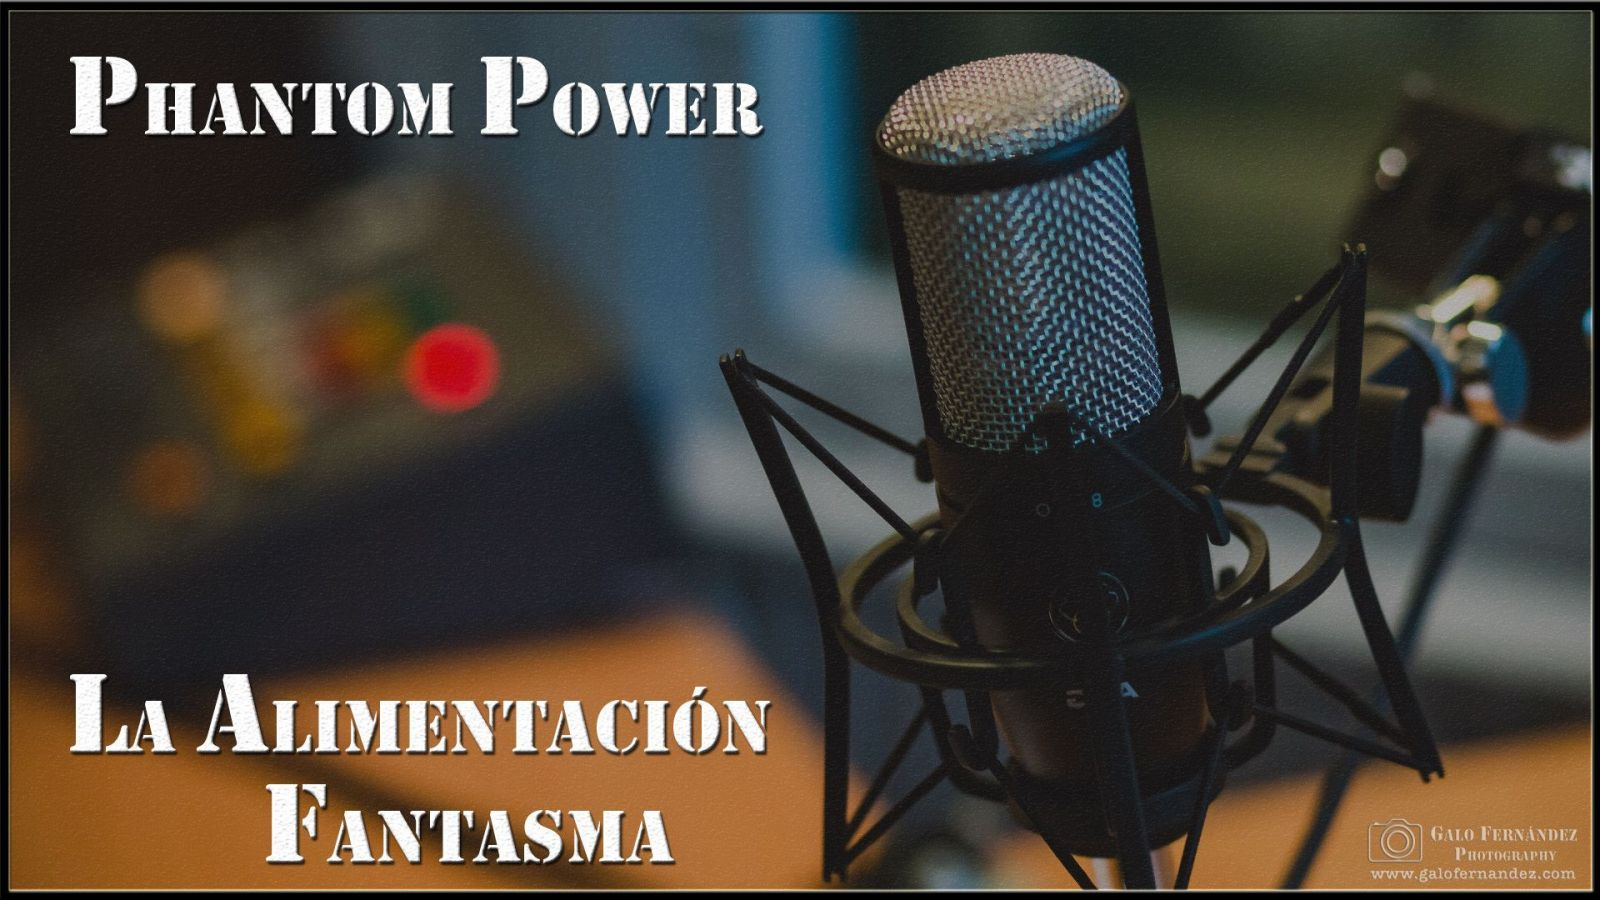 La Alimentación Fantasma o Phantom Power